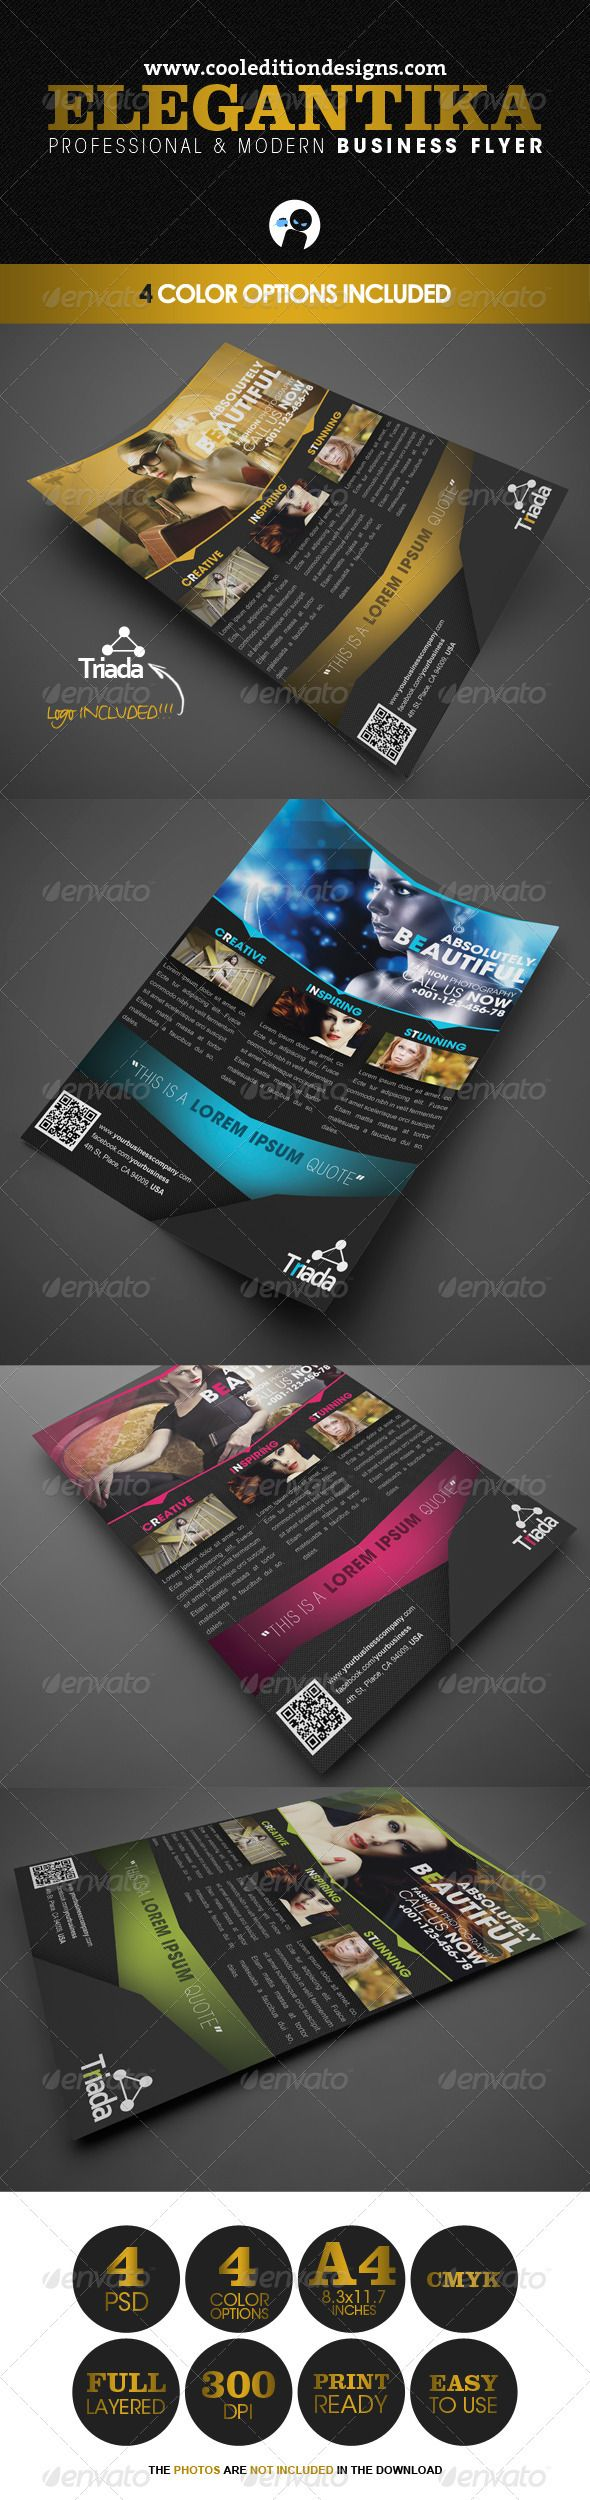 Elegantika  Professional  Modern Business Flyer  Business